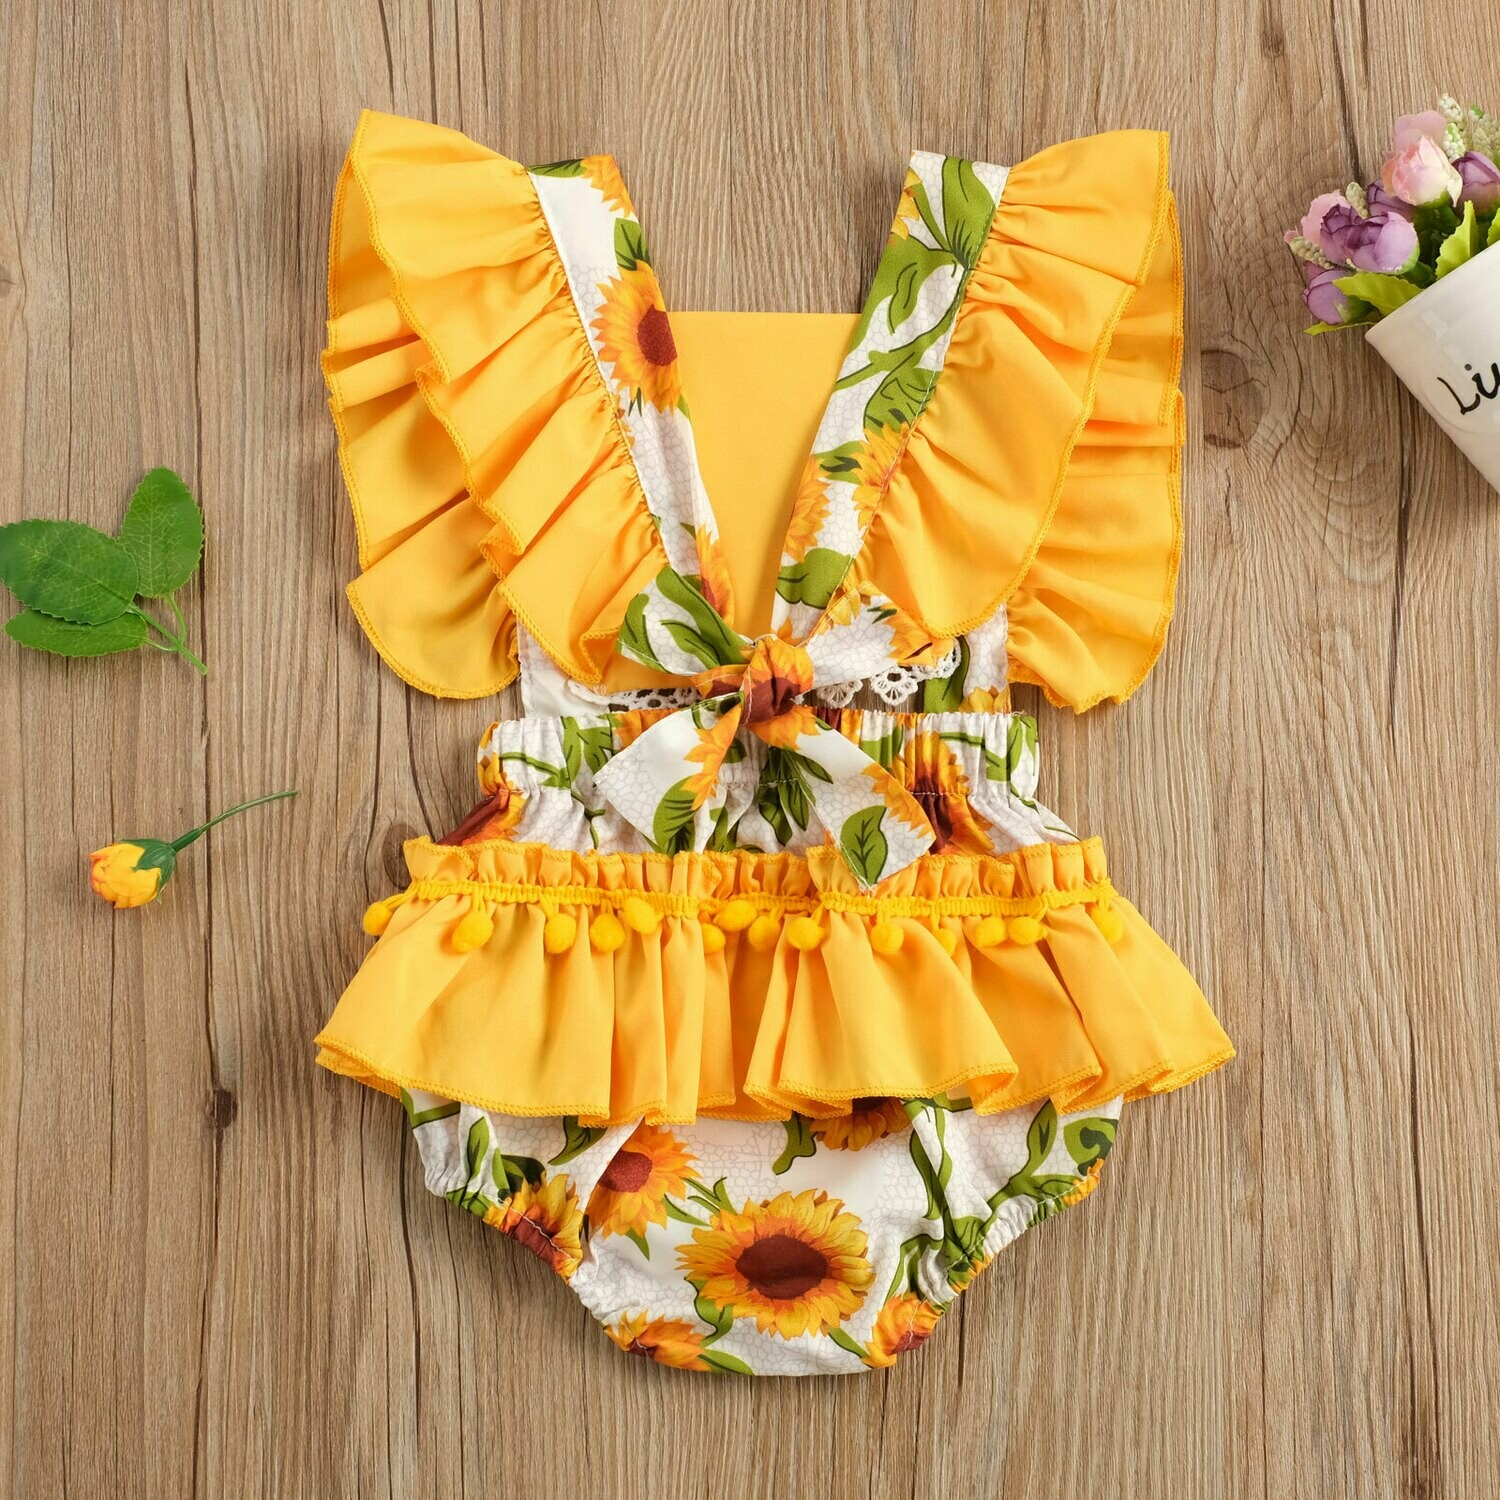 Yellow Romper with Sunflowers and Headband